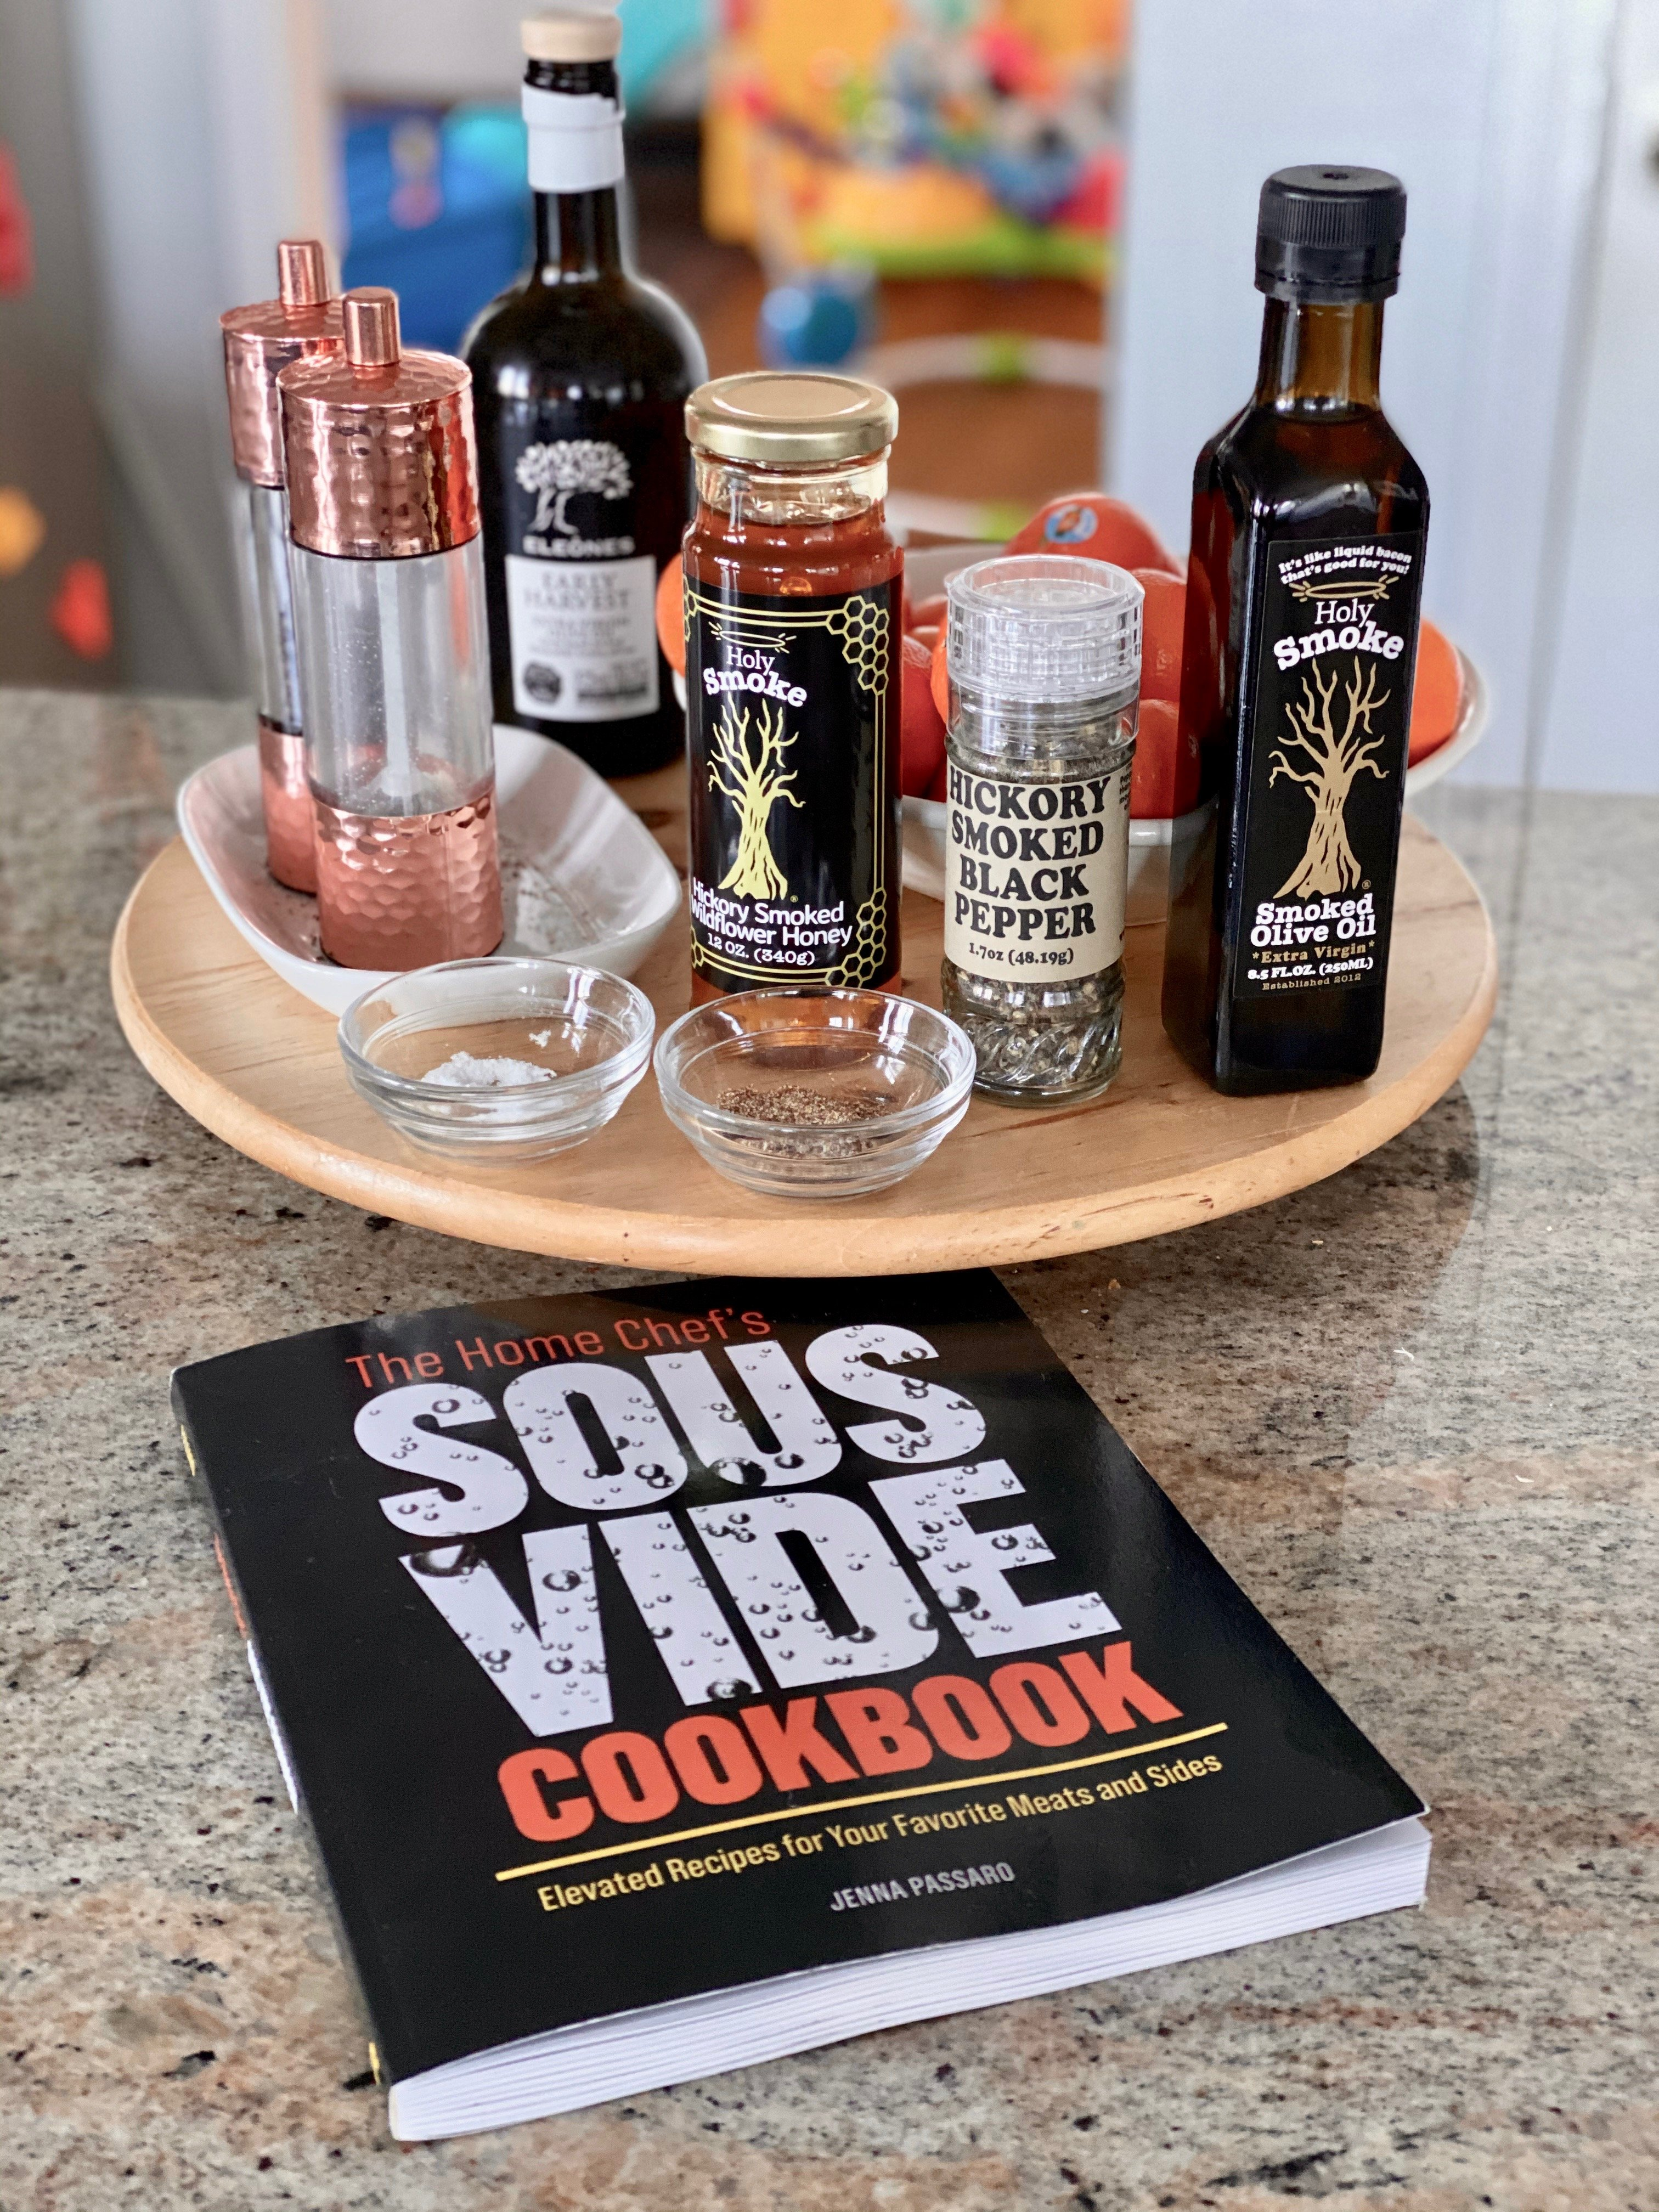 sous vide condiments including holy smoke olive oil with the March 2020 giveaway featuring Holy Smoke Olive Oil and The Home Chef's Sous Vide Cookbook